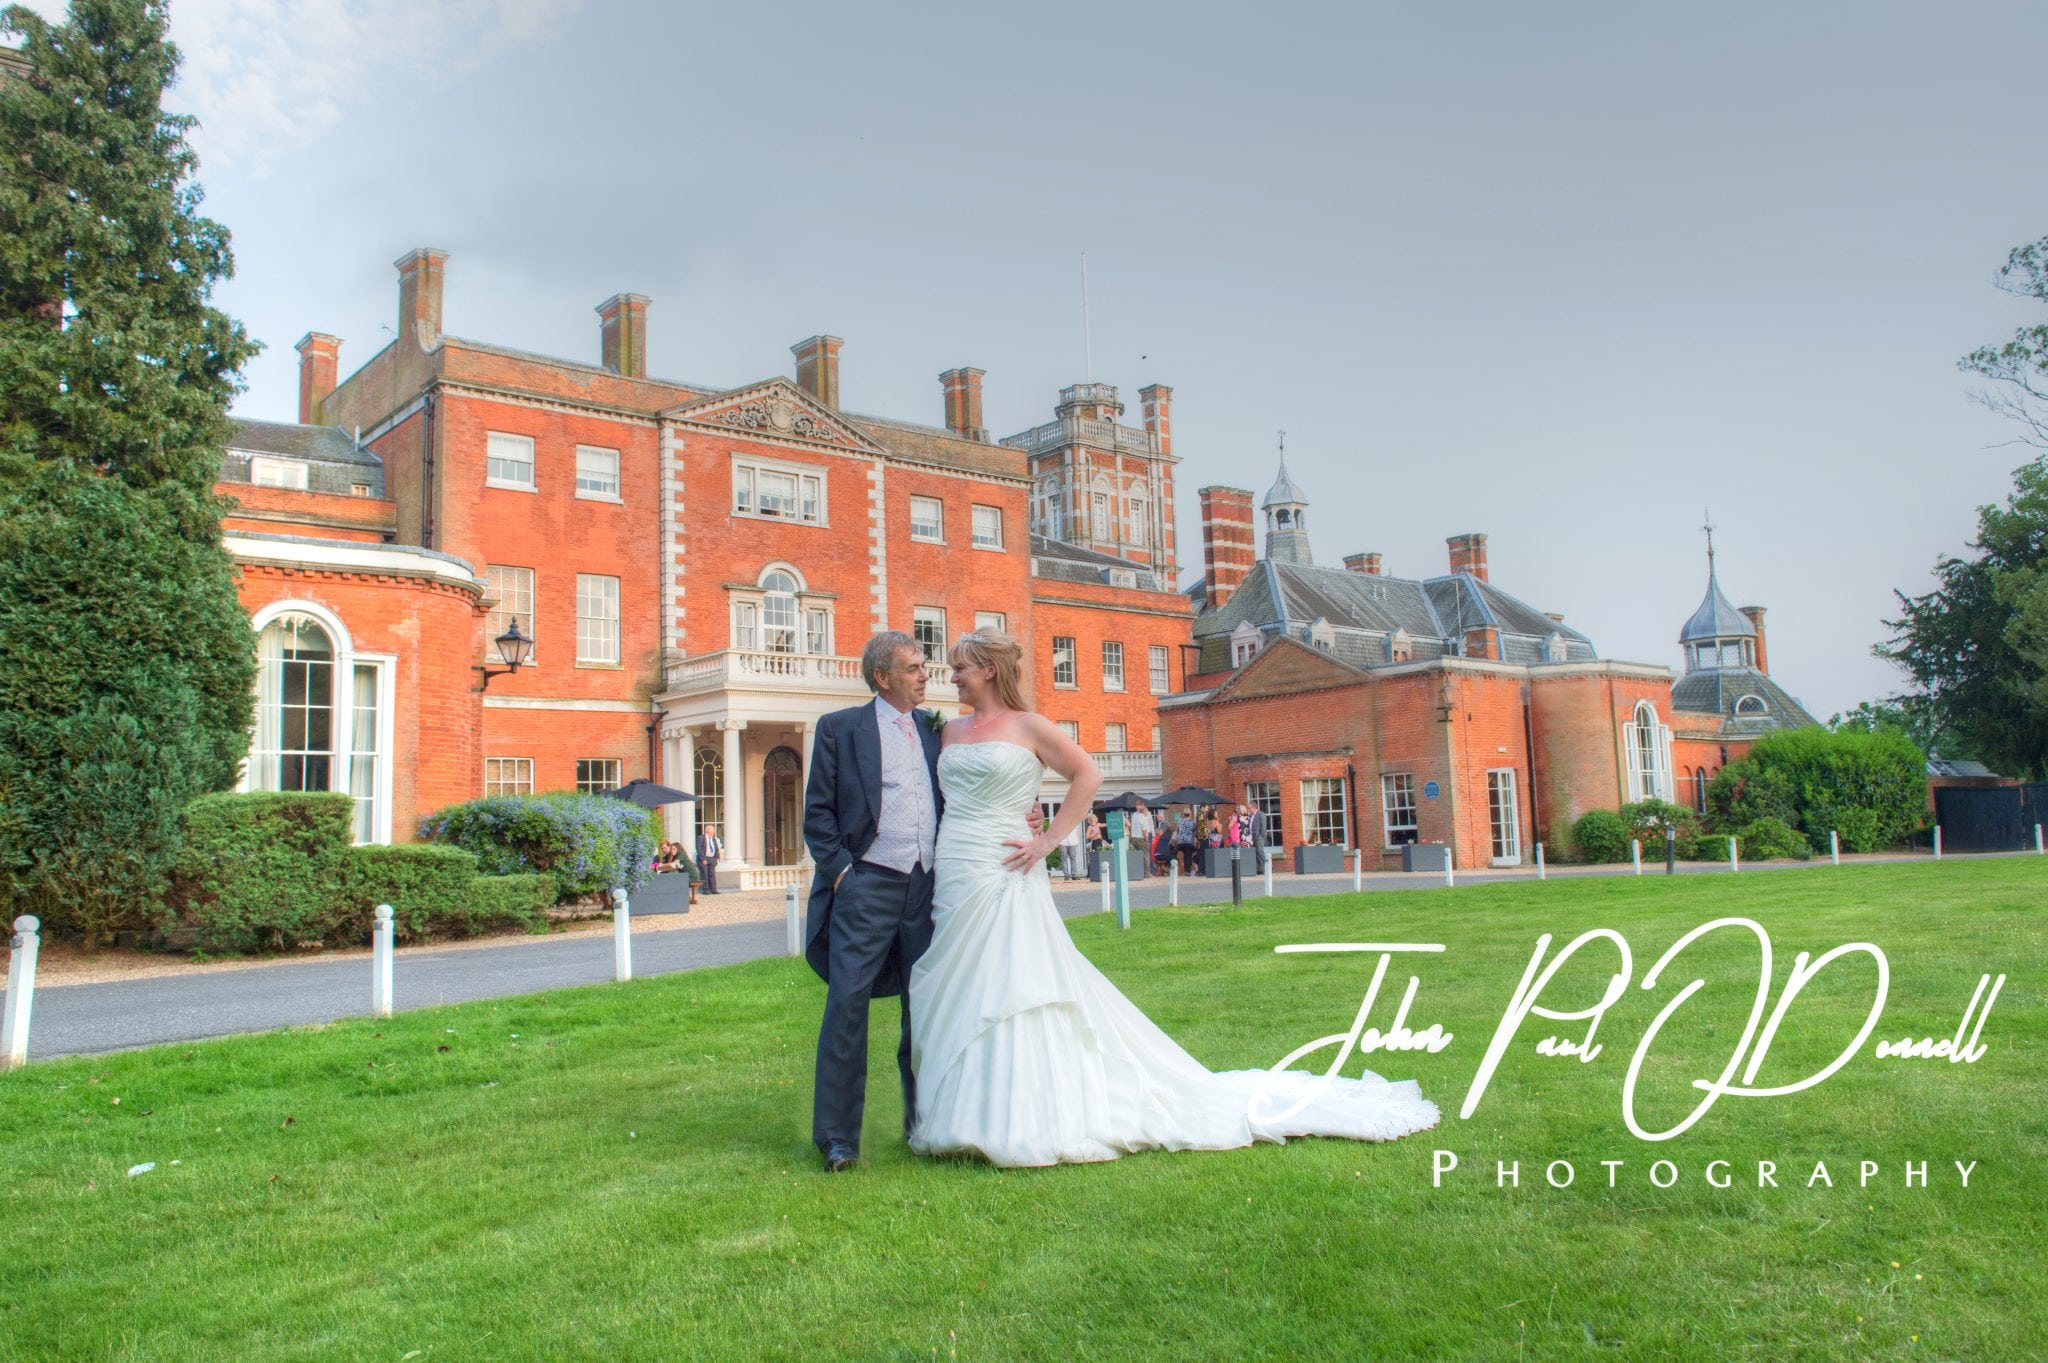 Nicola and Simons Wedding – Photographer Hertfordshire Theobalds Park